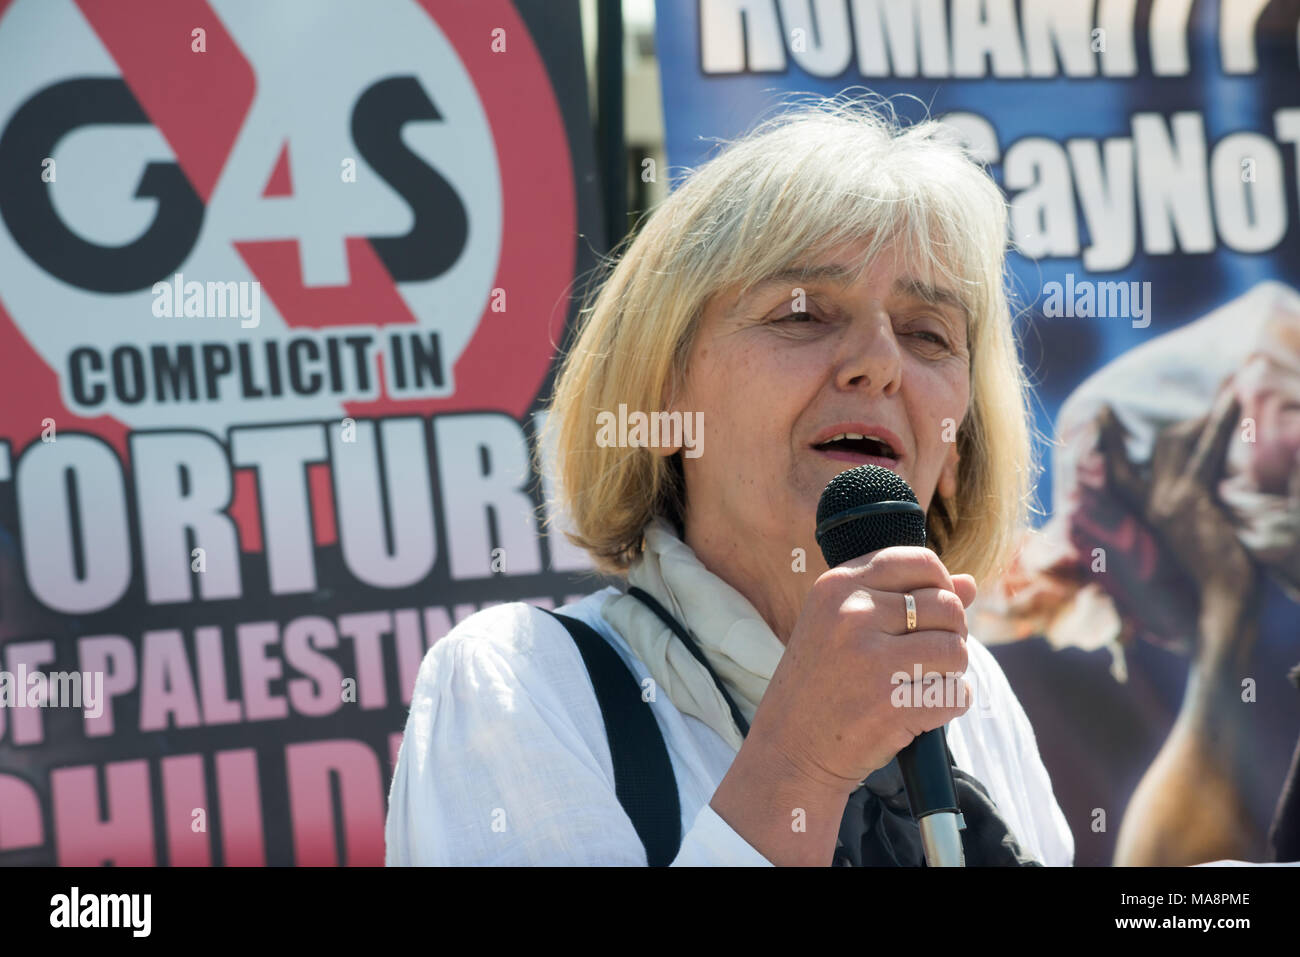 A G4S shareholder who is protesting at Stop G4S protest tells those outside the building how she was ejected from the meeting after raising the question of the treatment of the Hares boys, held for over two years for an imaginary offece.. Stock Photo